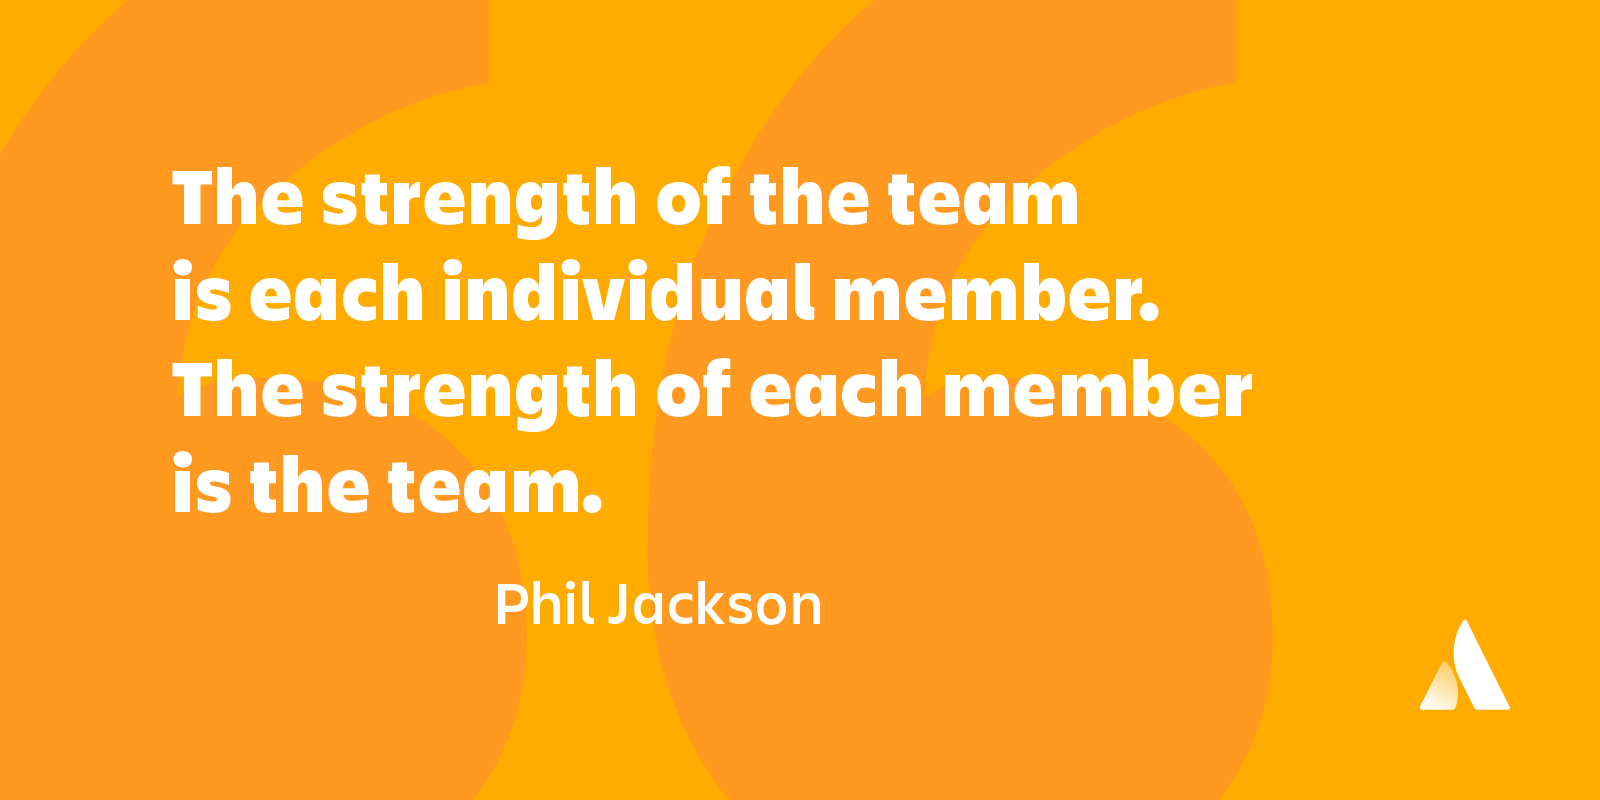 18 non corny teamwork quotes you'll actually like   Work Life by